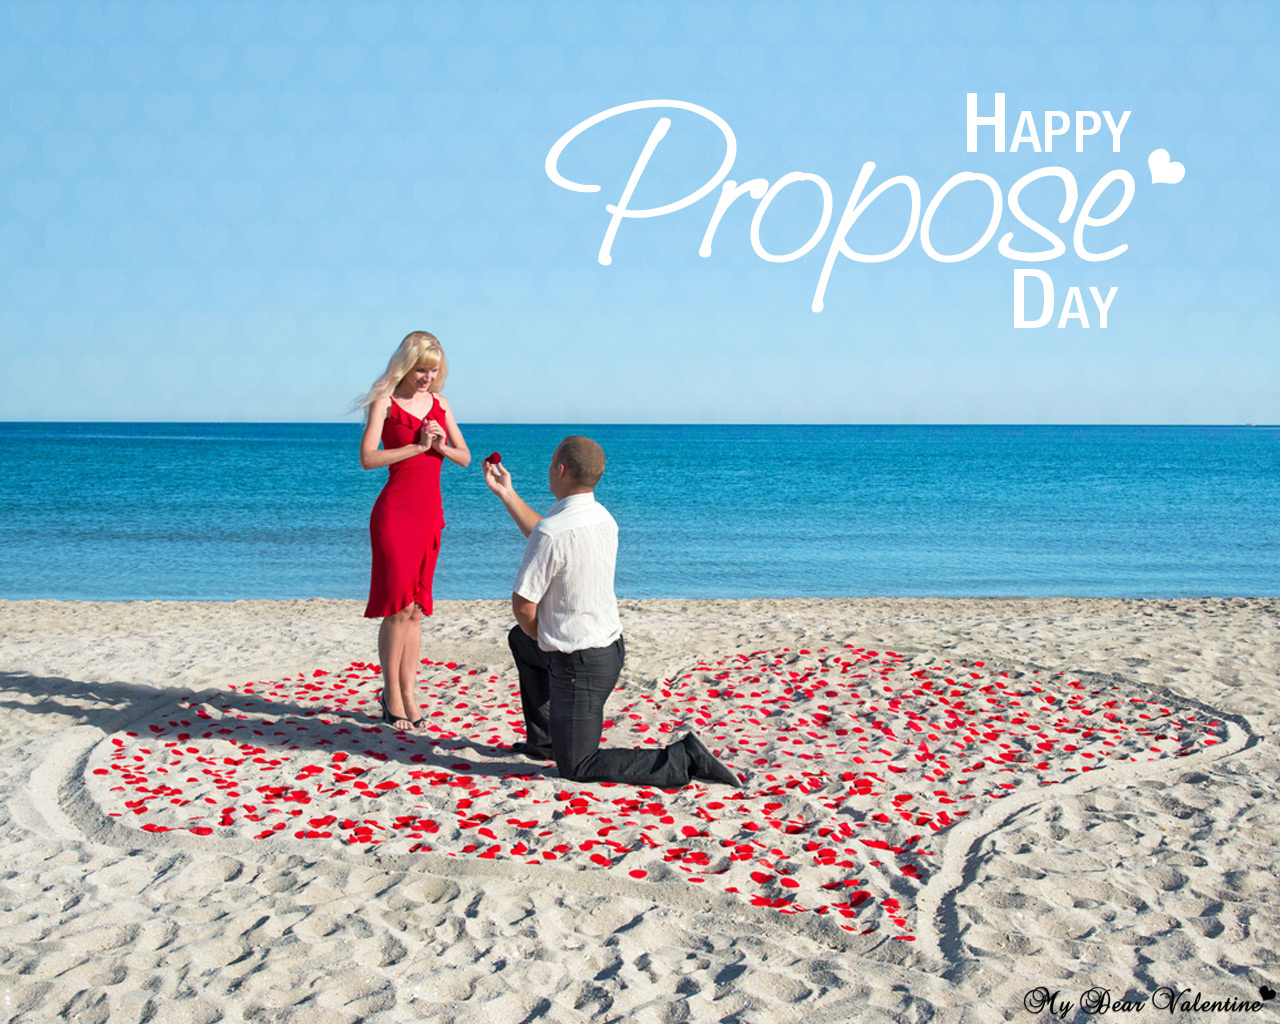 Boy Proposing Girl Hd Wallpaper Happy Propose Day Romantic Gifts And Free Wallpapers For